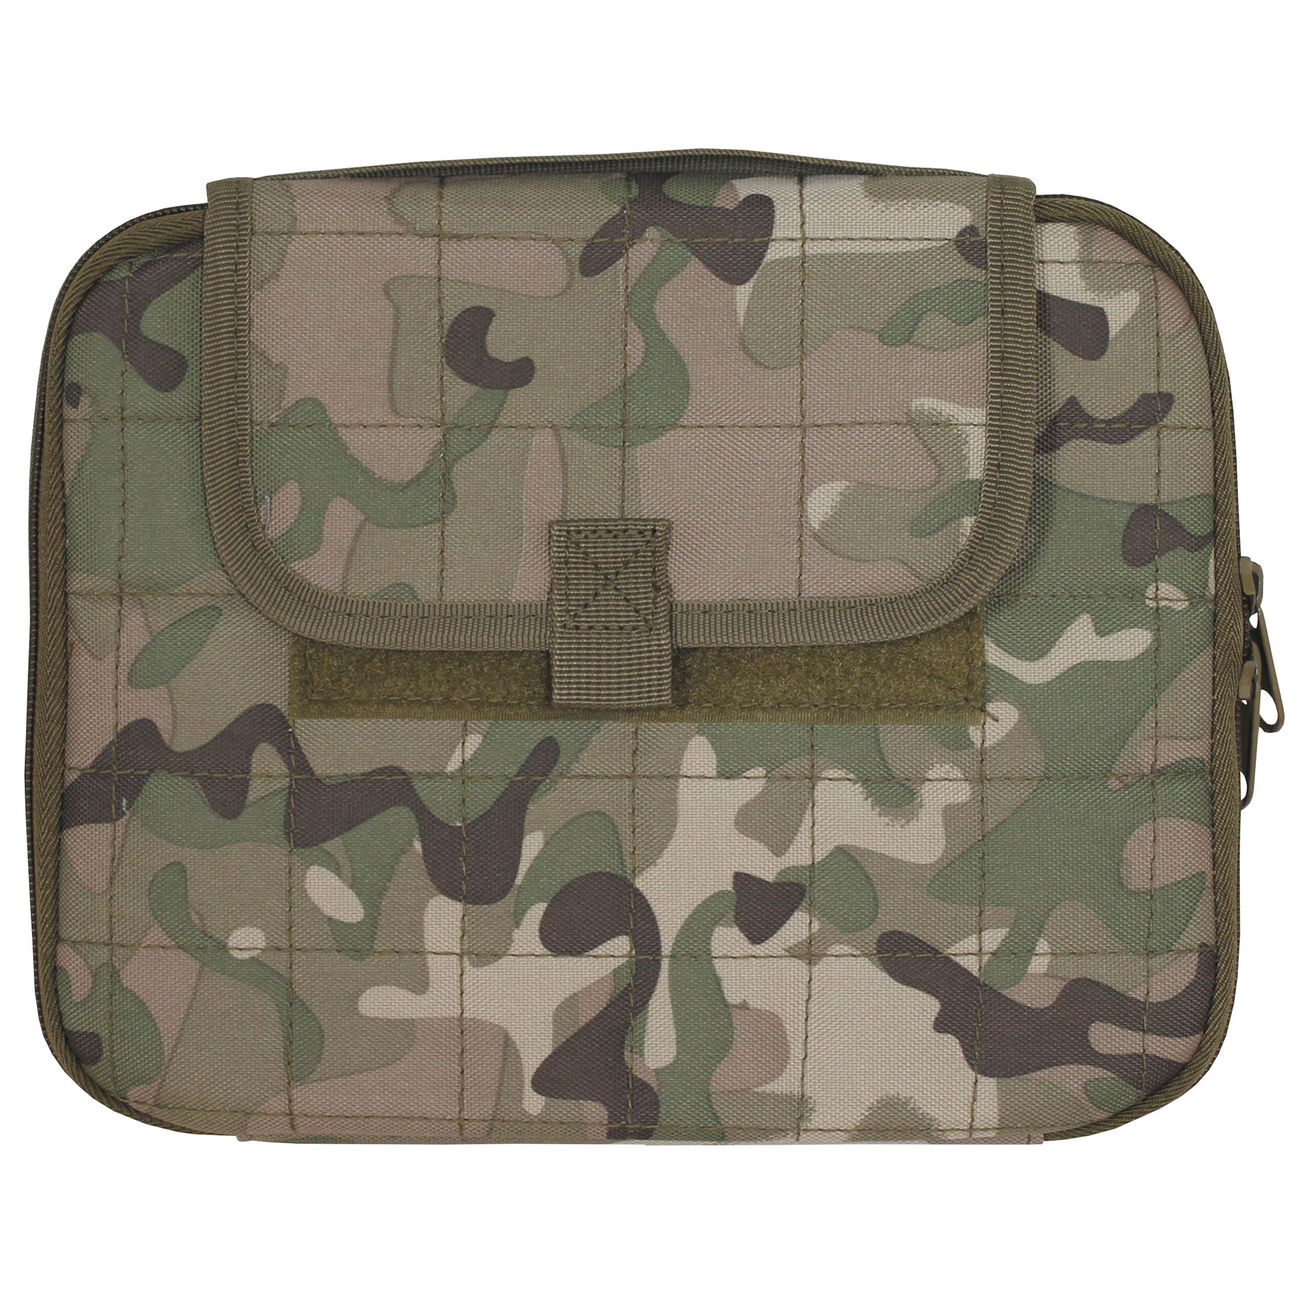 MFH Tablet-Tasche Molle operation camo 0